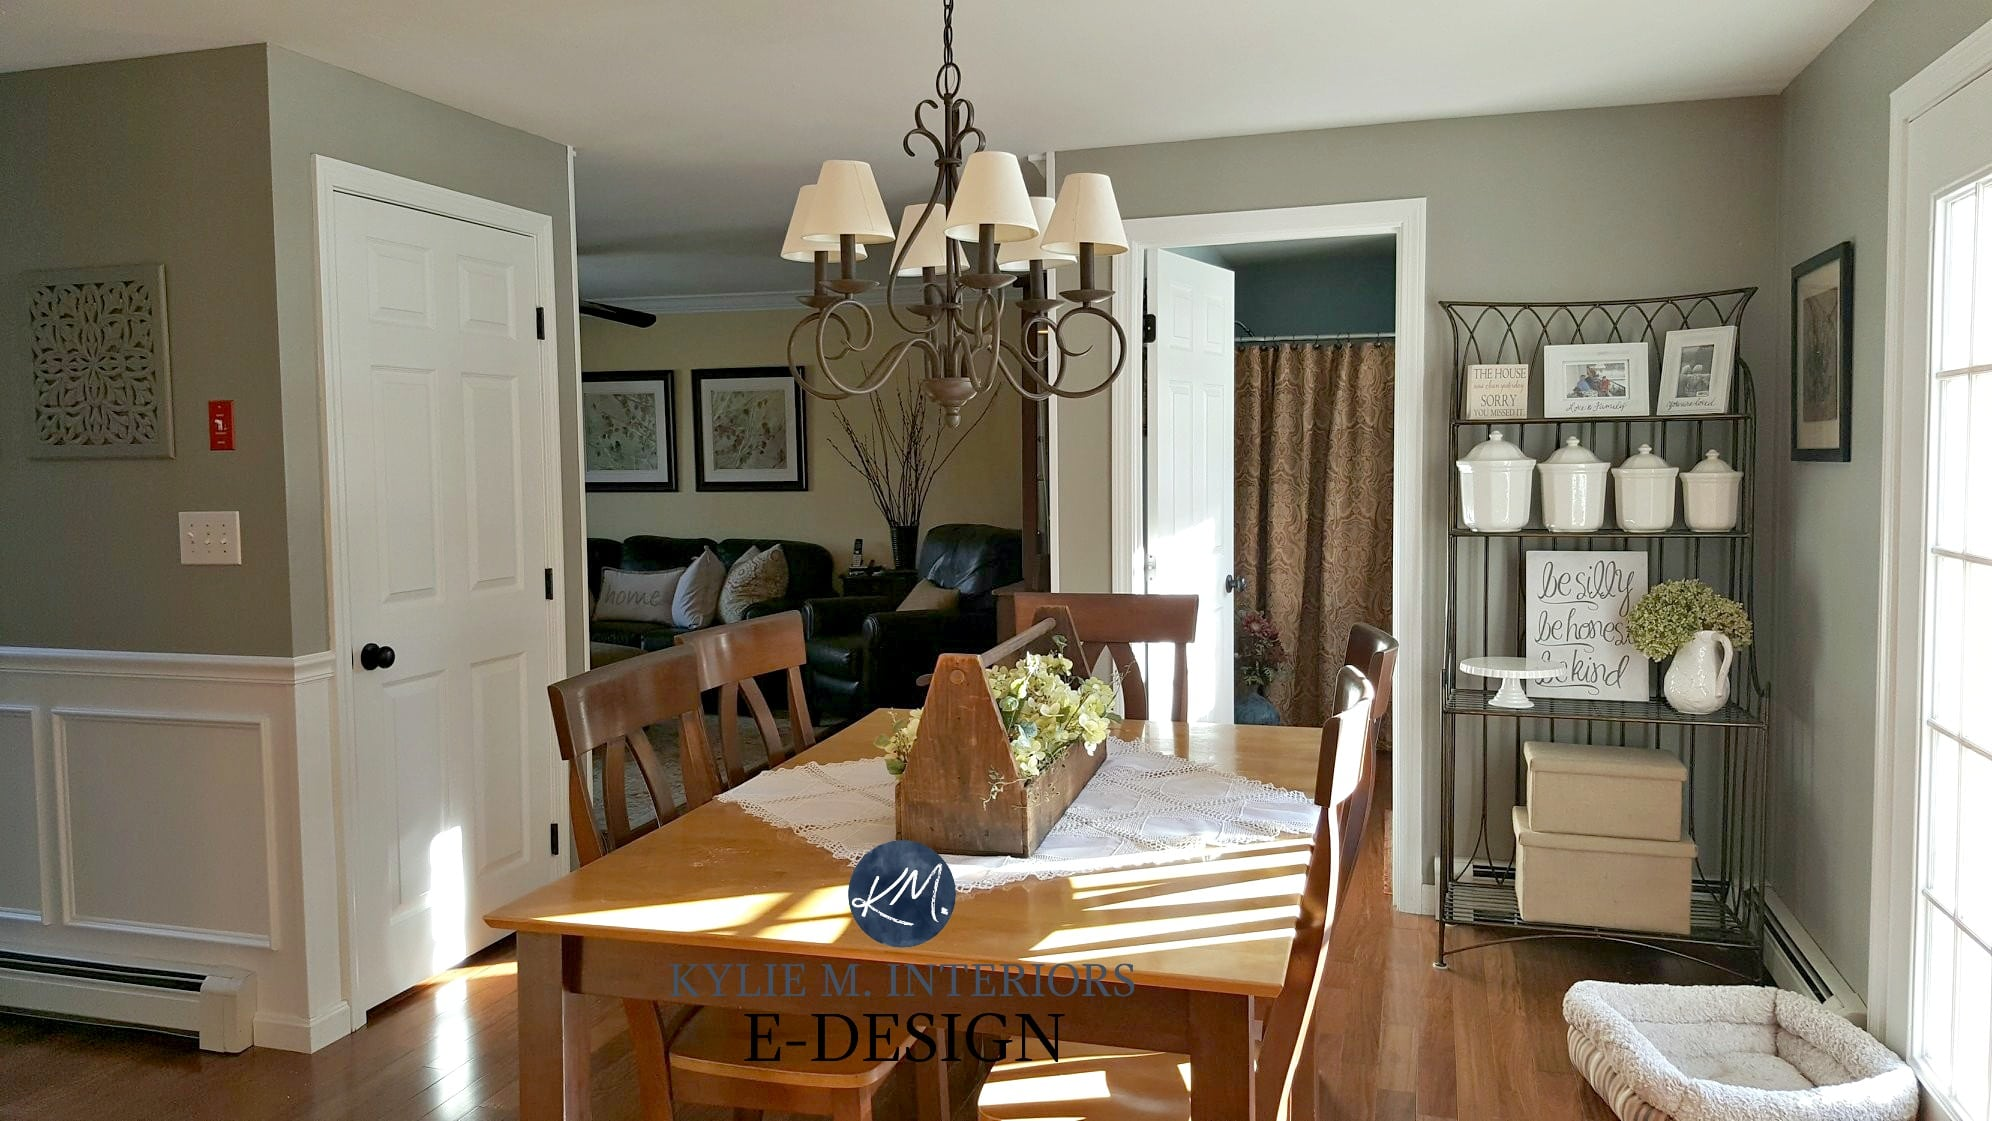 dining room decor interior design wall gray color wooden floor | Country farmhouse style dining room, warm wood floor and ...